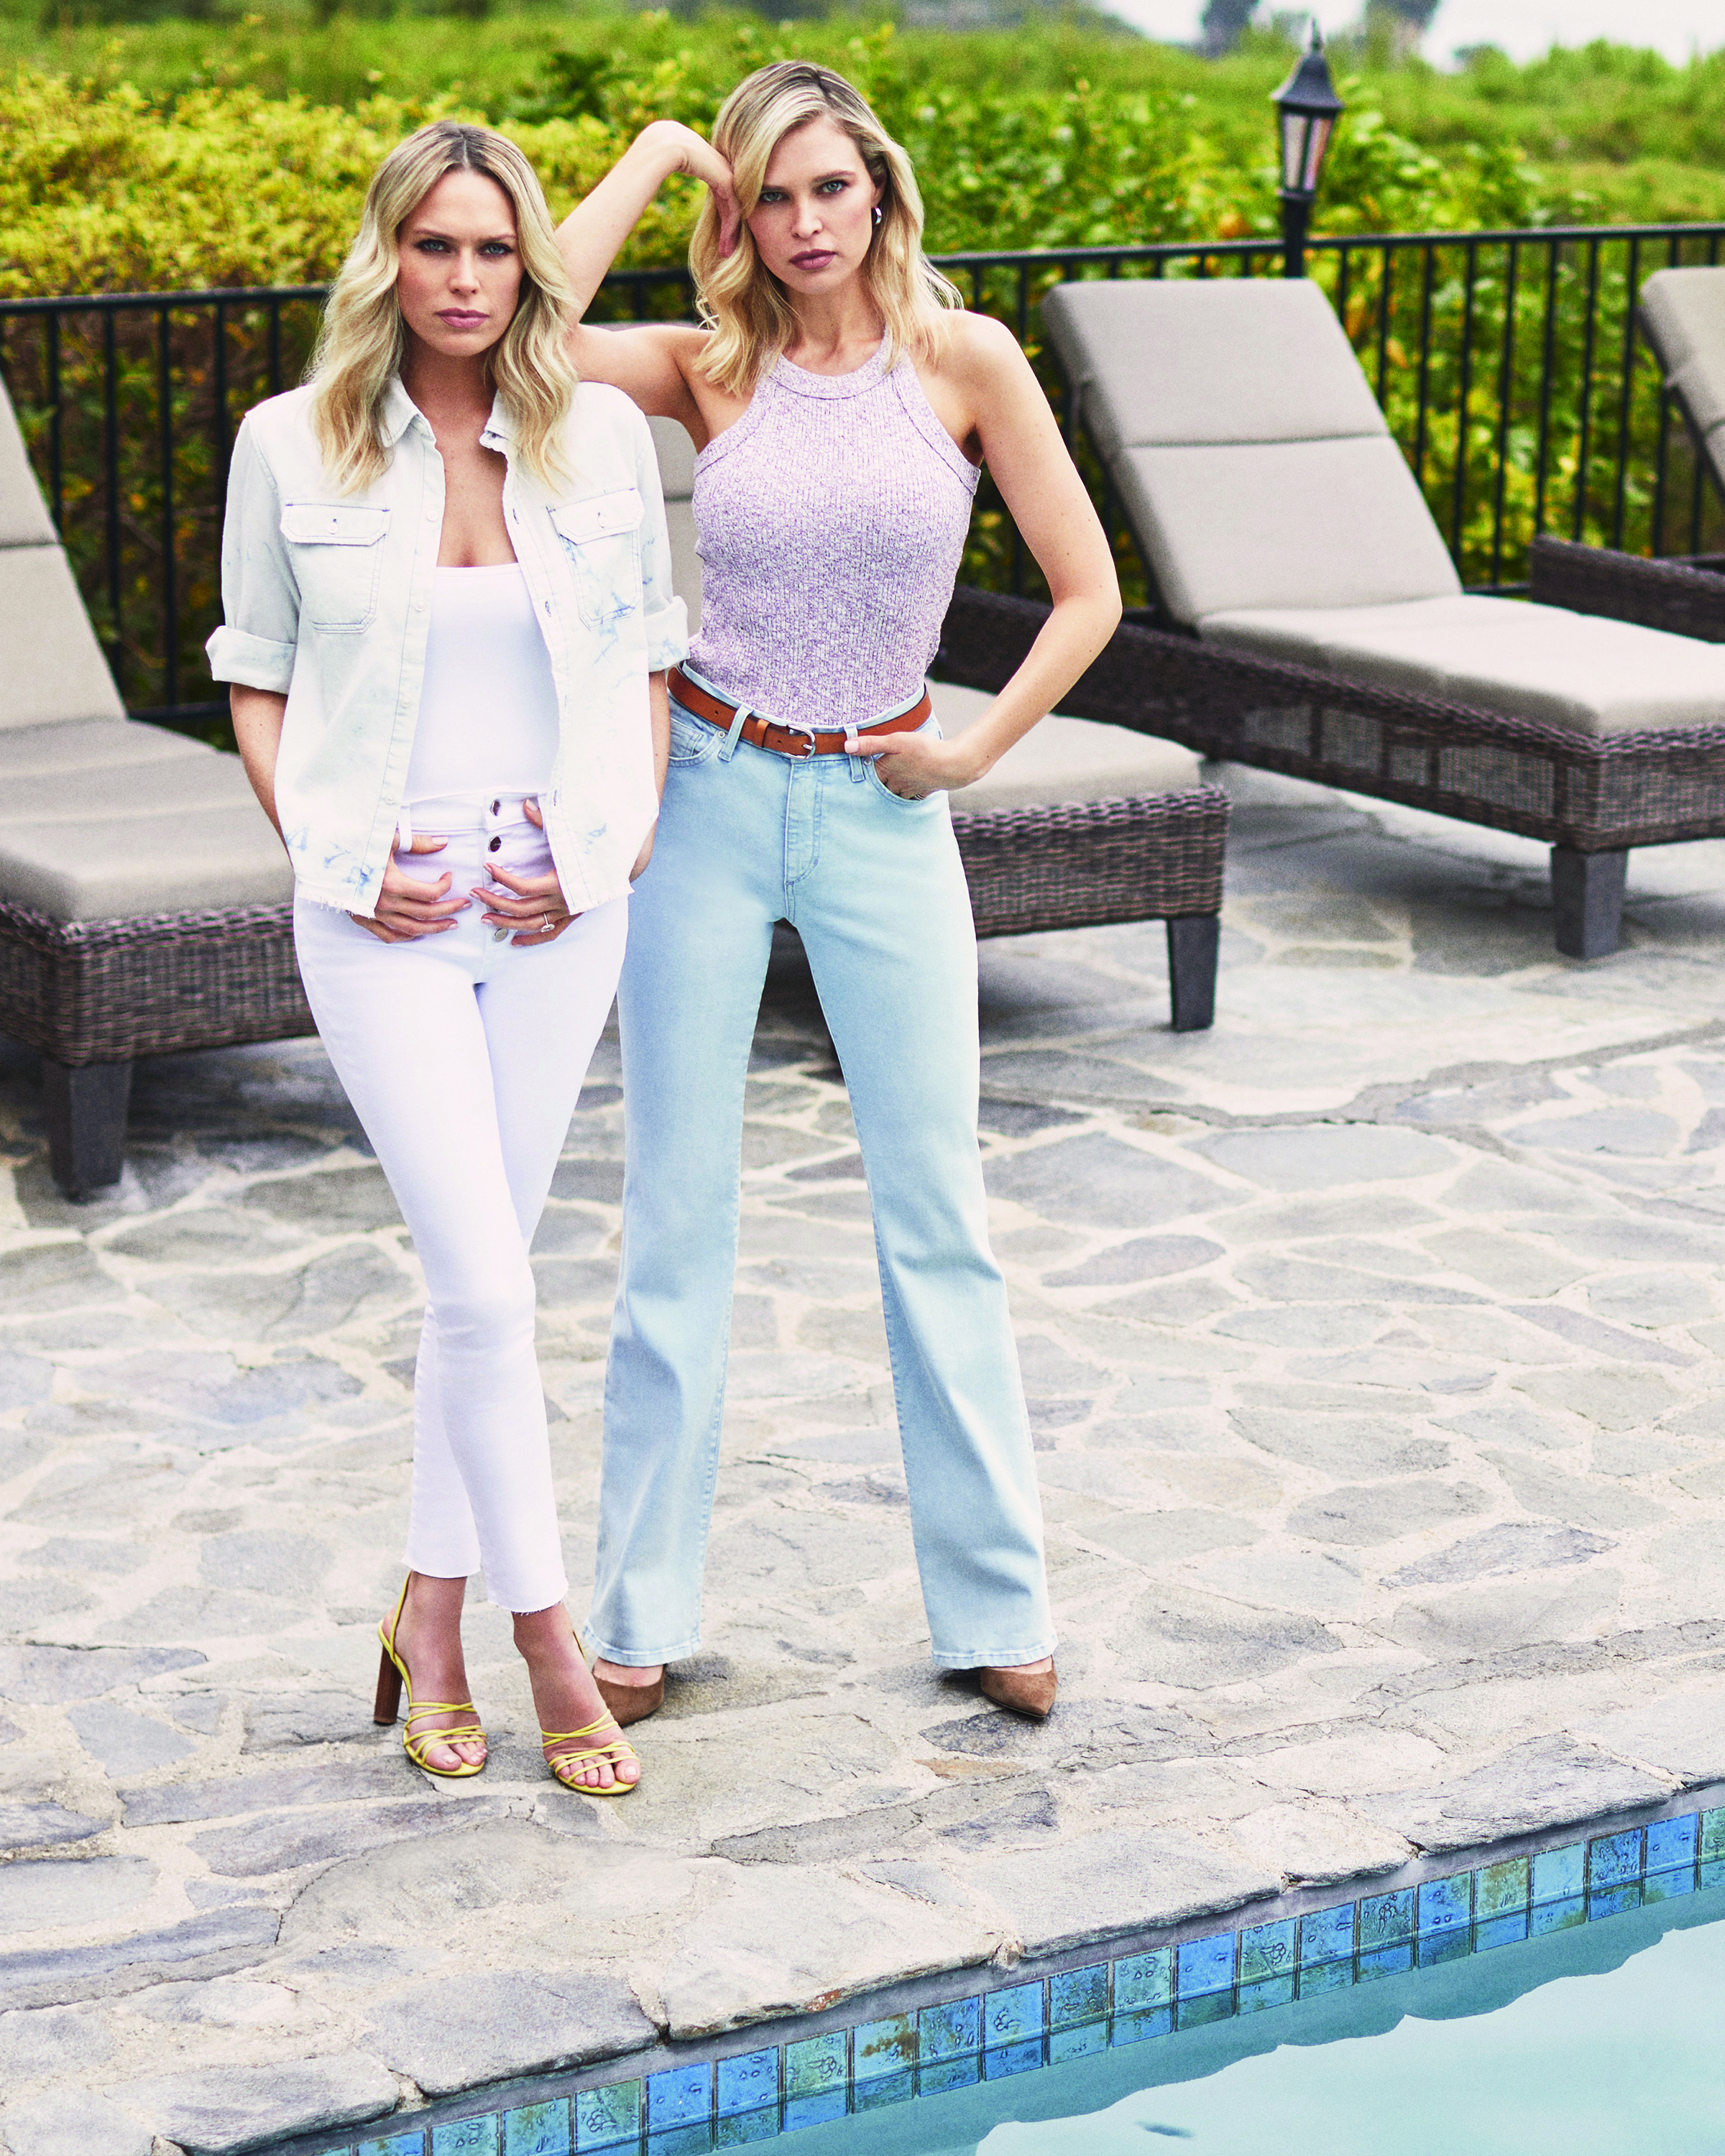 An ad image of Erin and Sara Foster for Joe's Jeans.